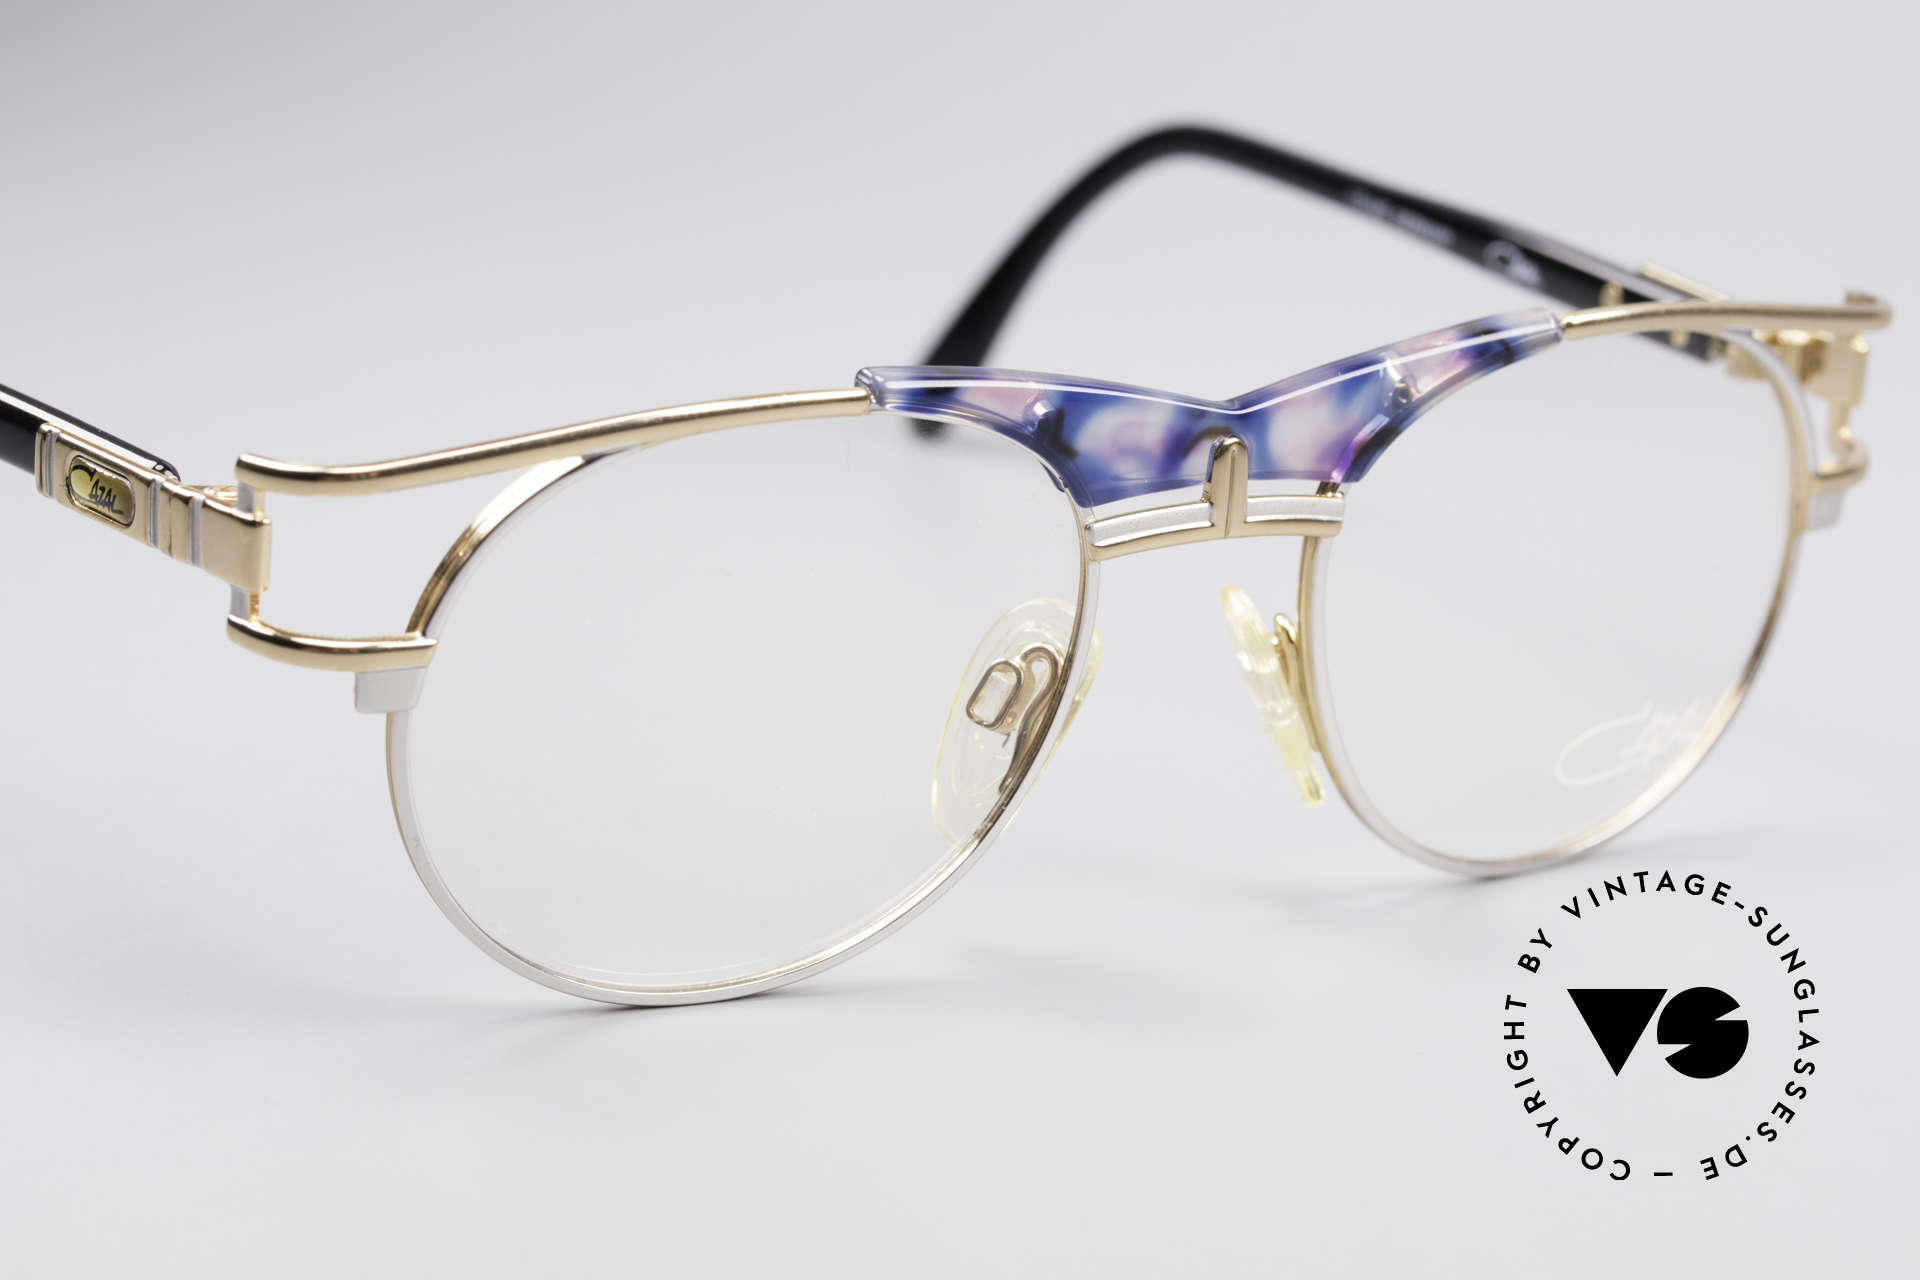 Cazal 244 Iconic Vintage Eyeglasses, NO RETRO specs, but a 25 years old ORIGINAL!, Made for Men and Women